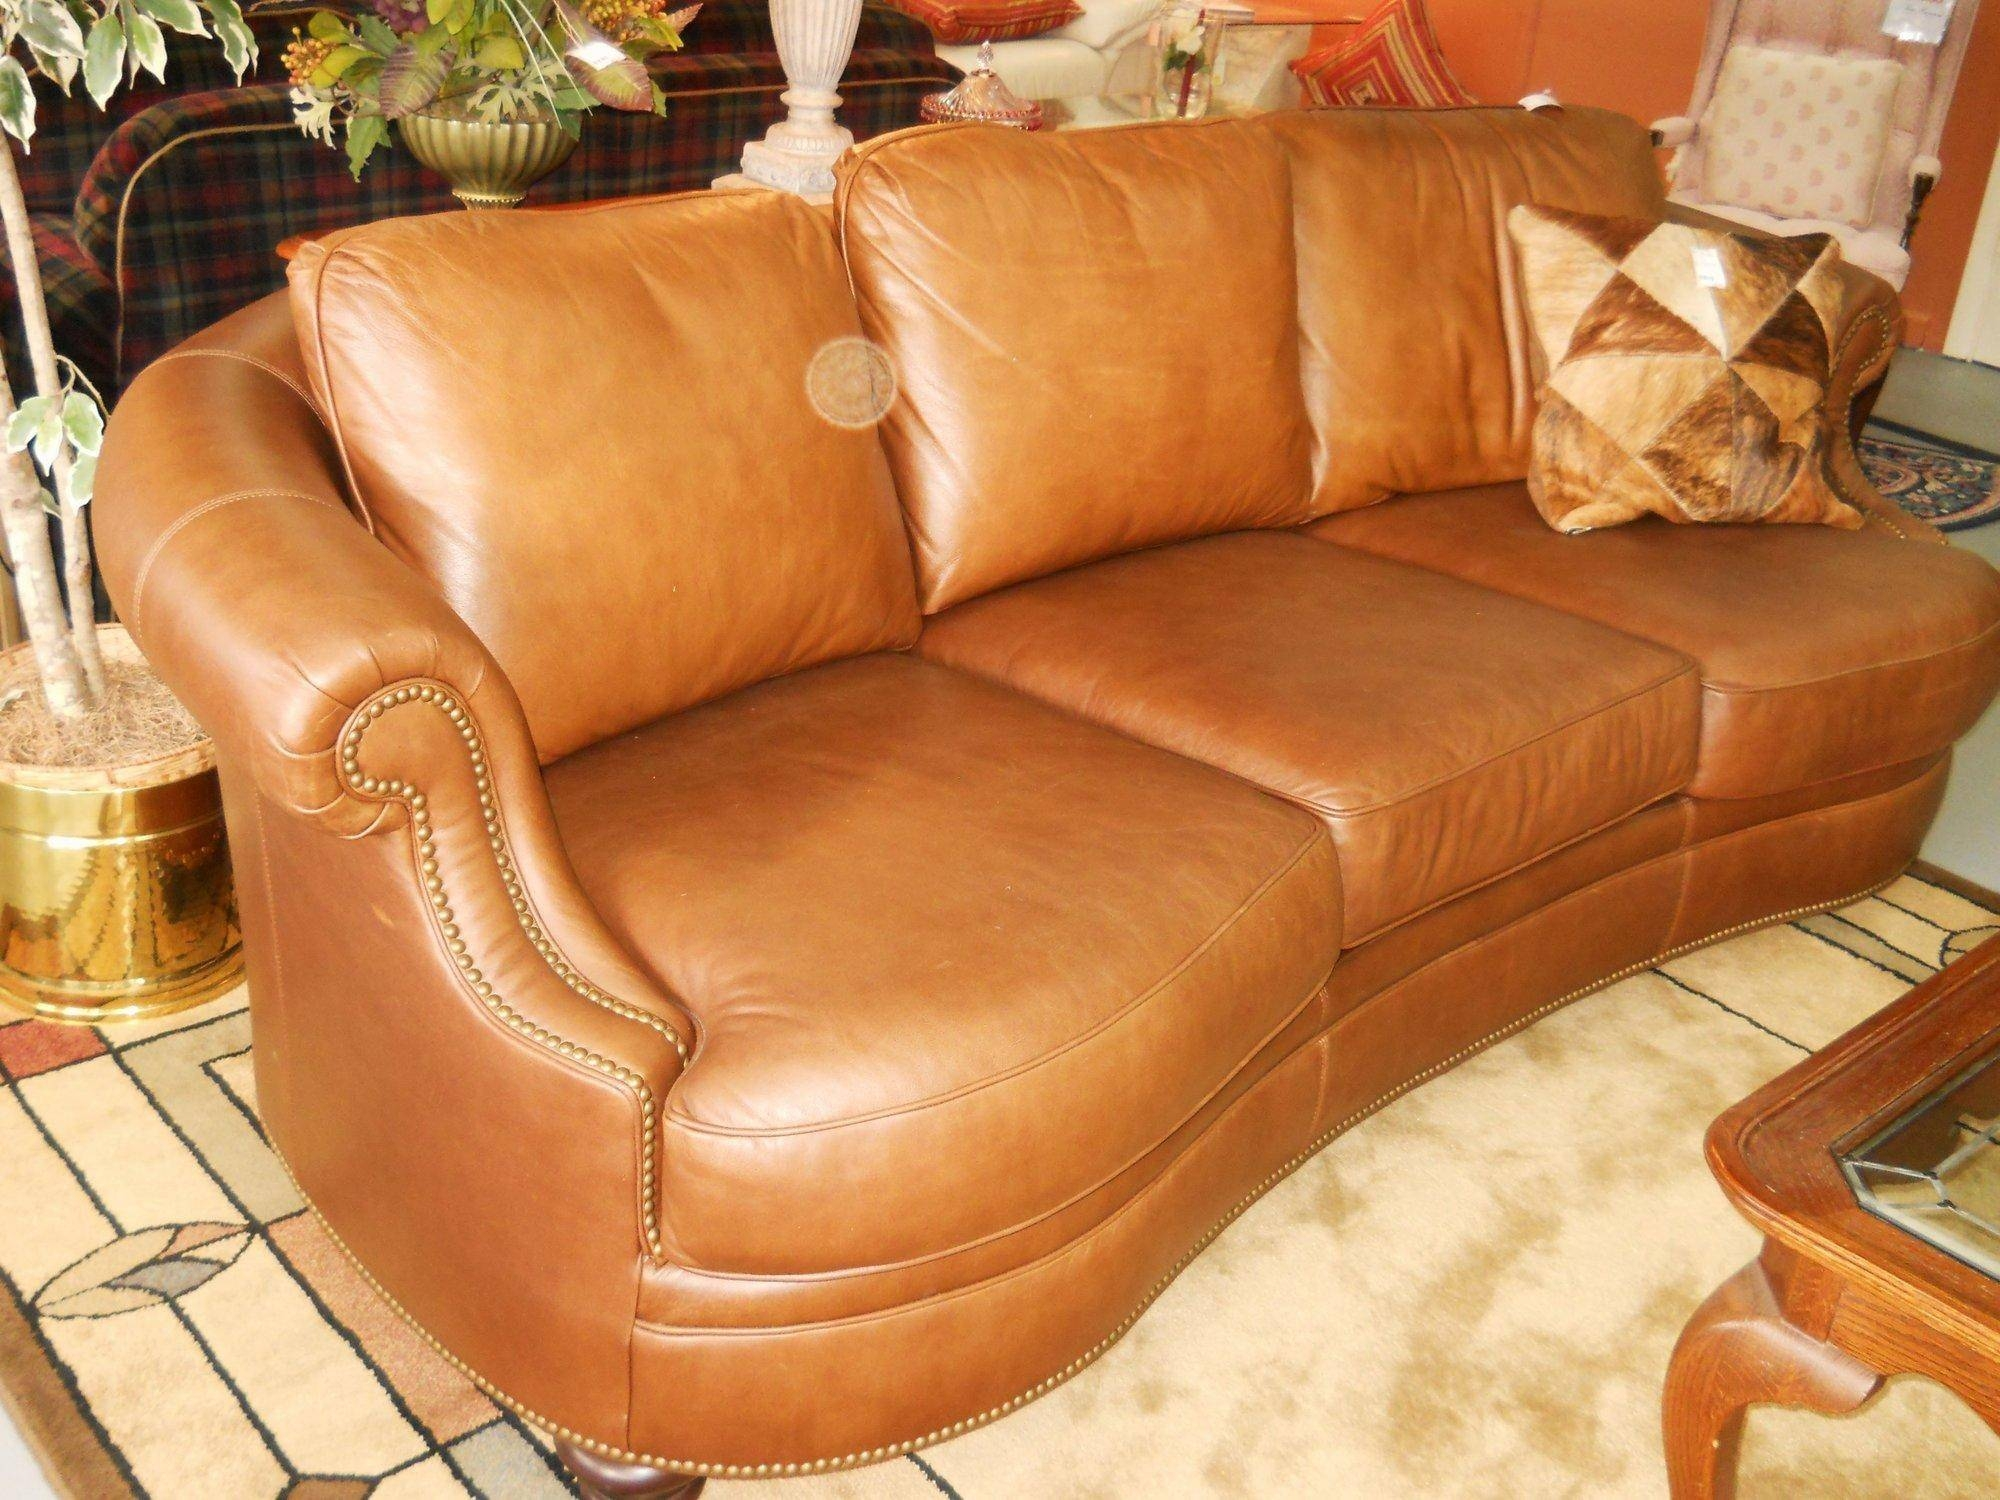 20 Top Camel Color Leather Sofas | Sofa Ideas For Camel Colored Leather Sofas (View 1 of 15)